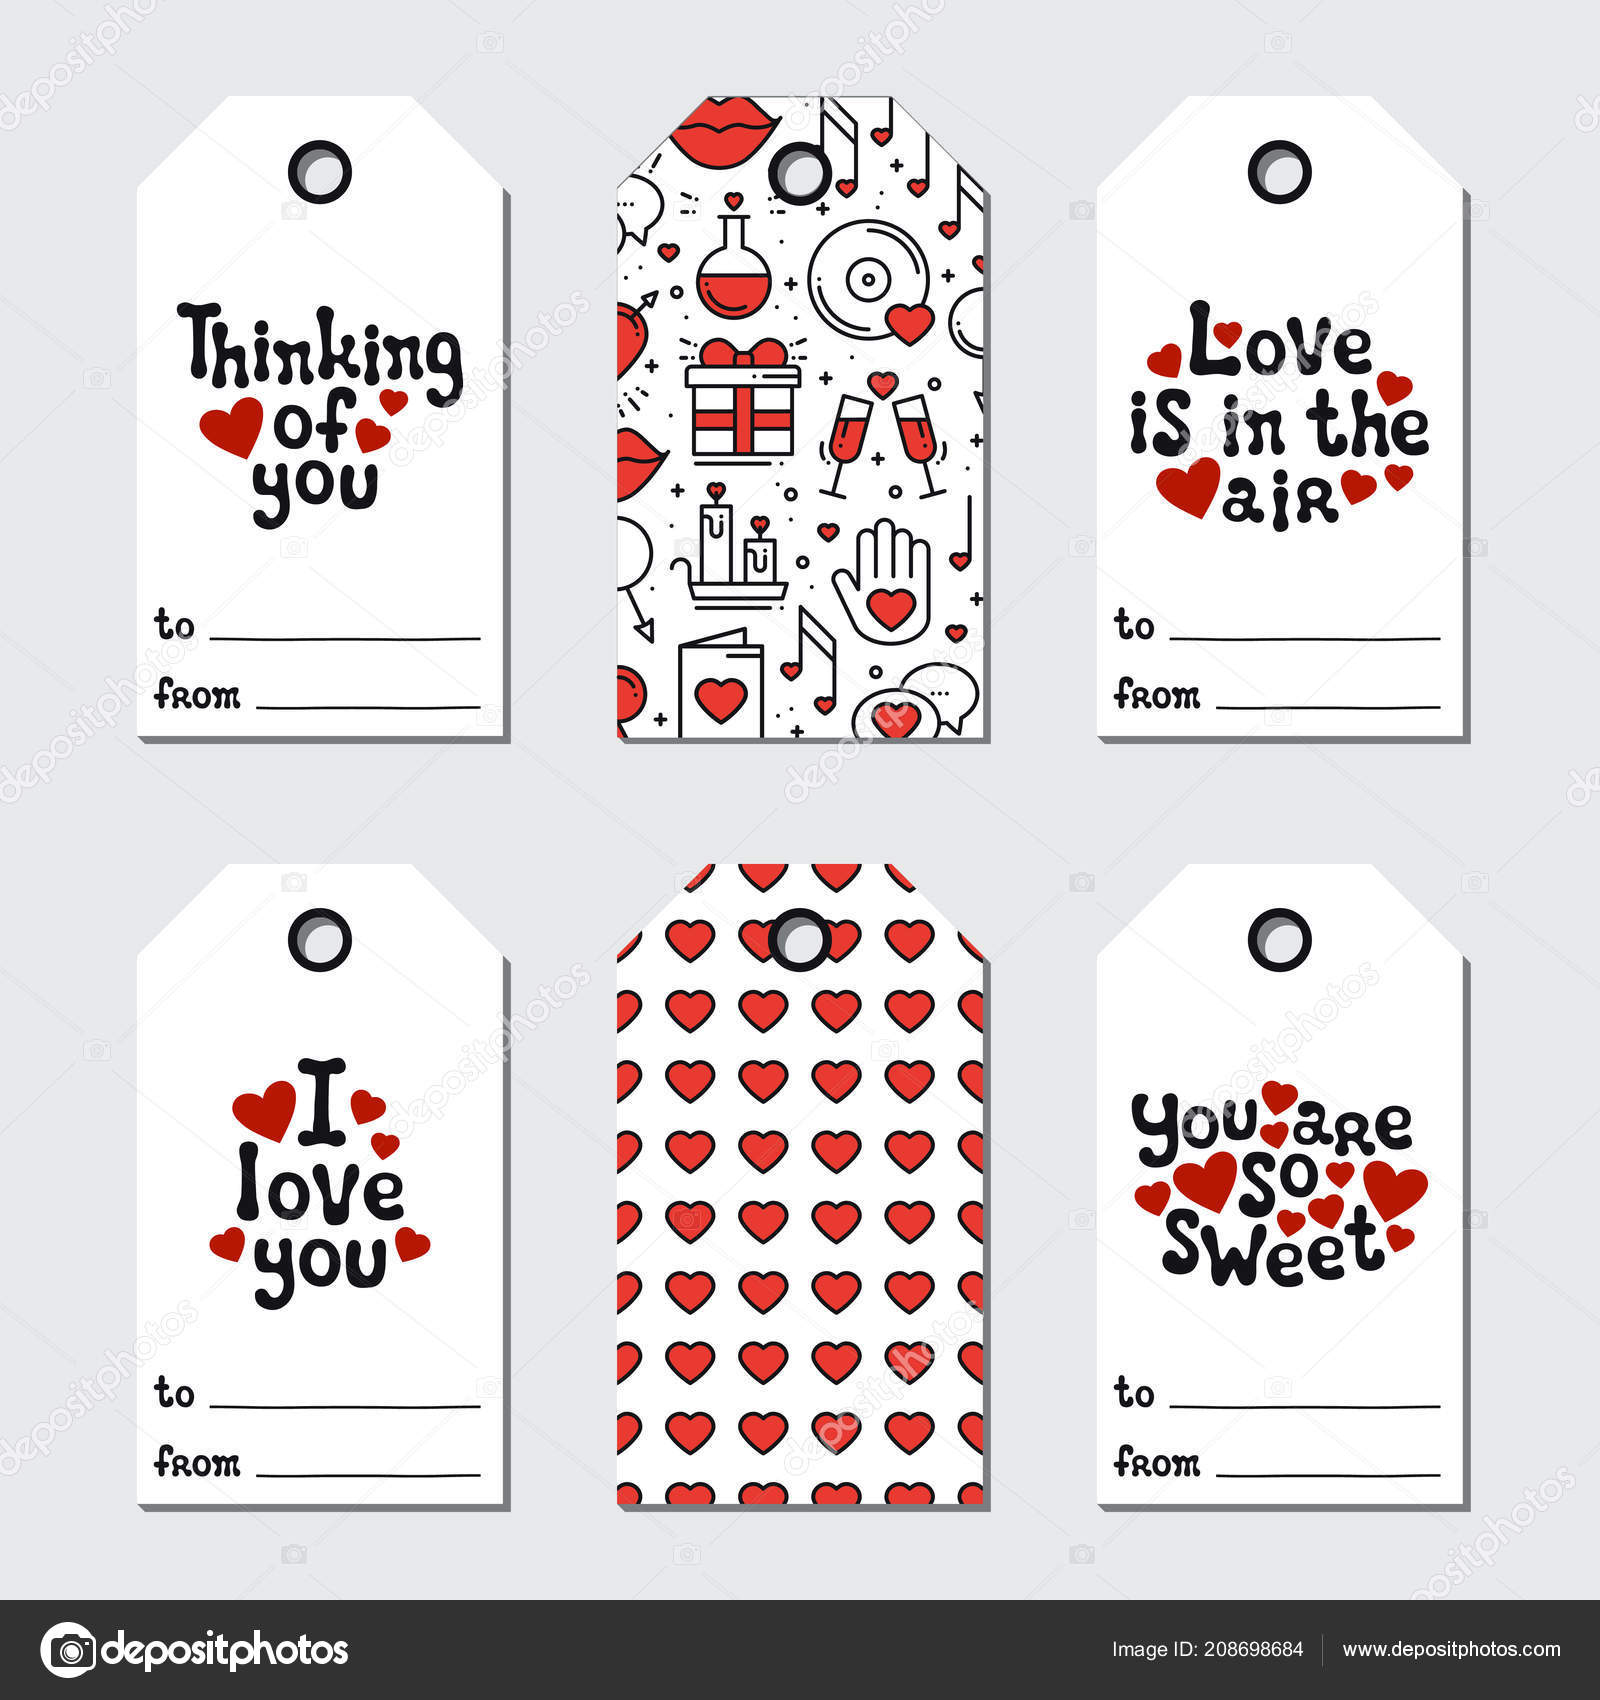 graphic about Holiday Tags Printable named St Valentines working day present tags. Printable tags choice. Appreciate